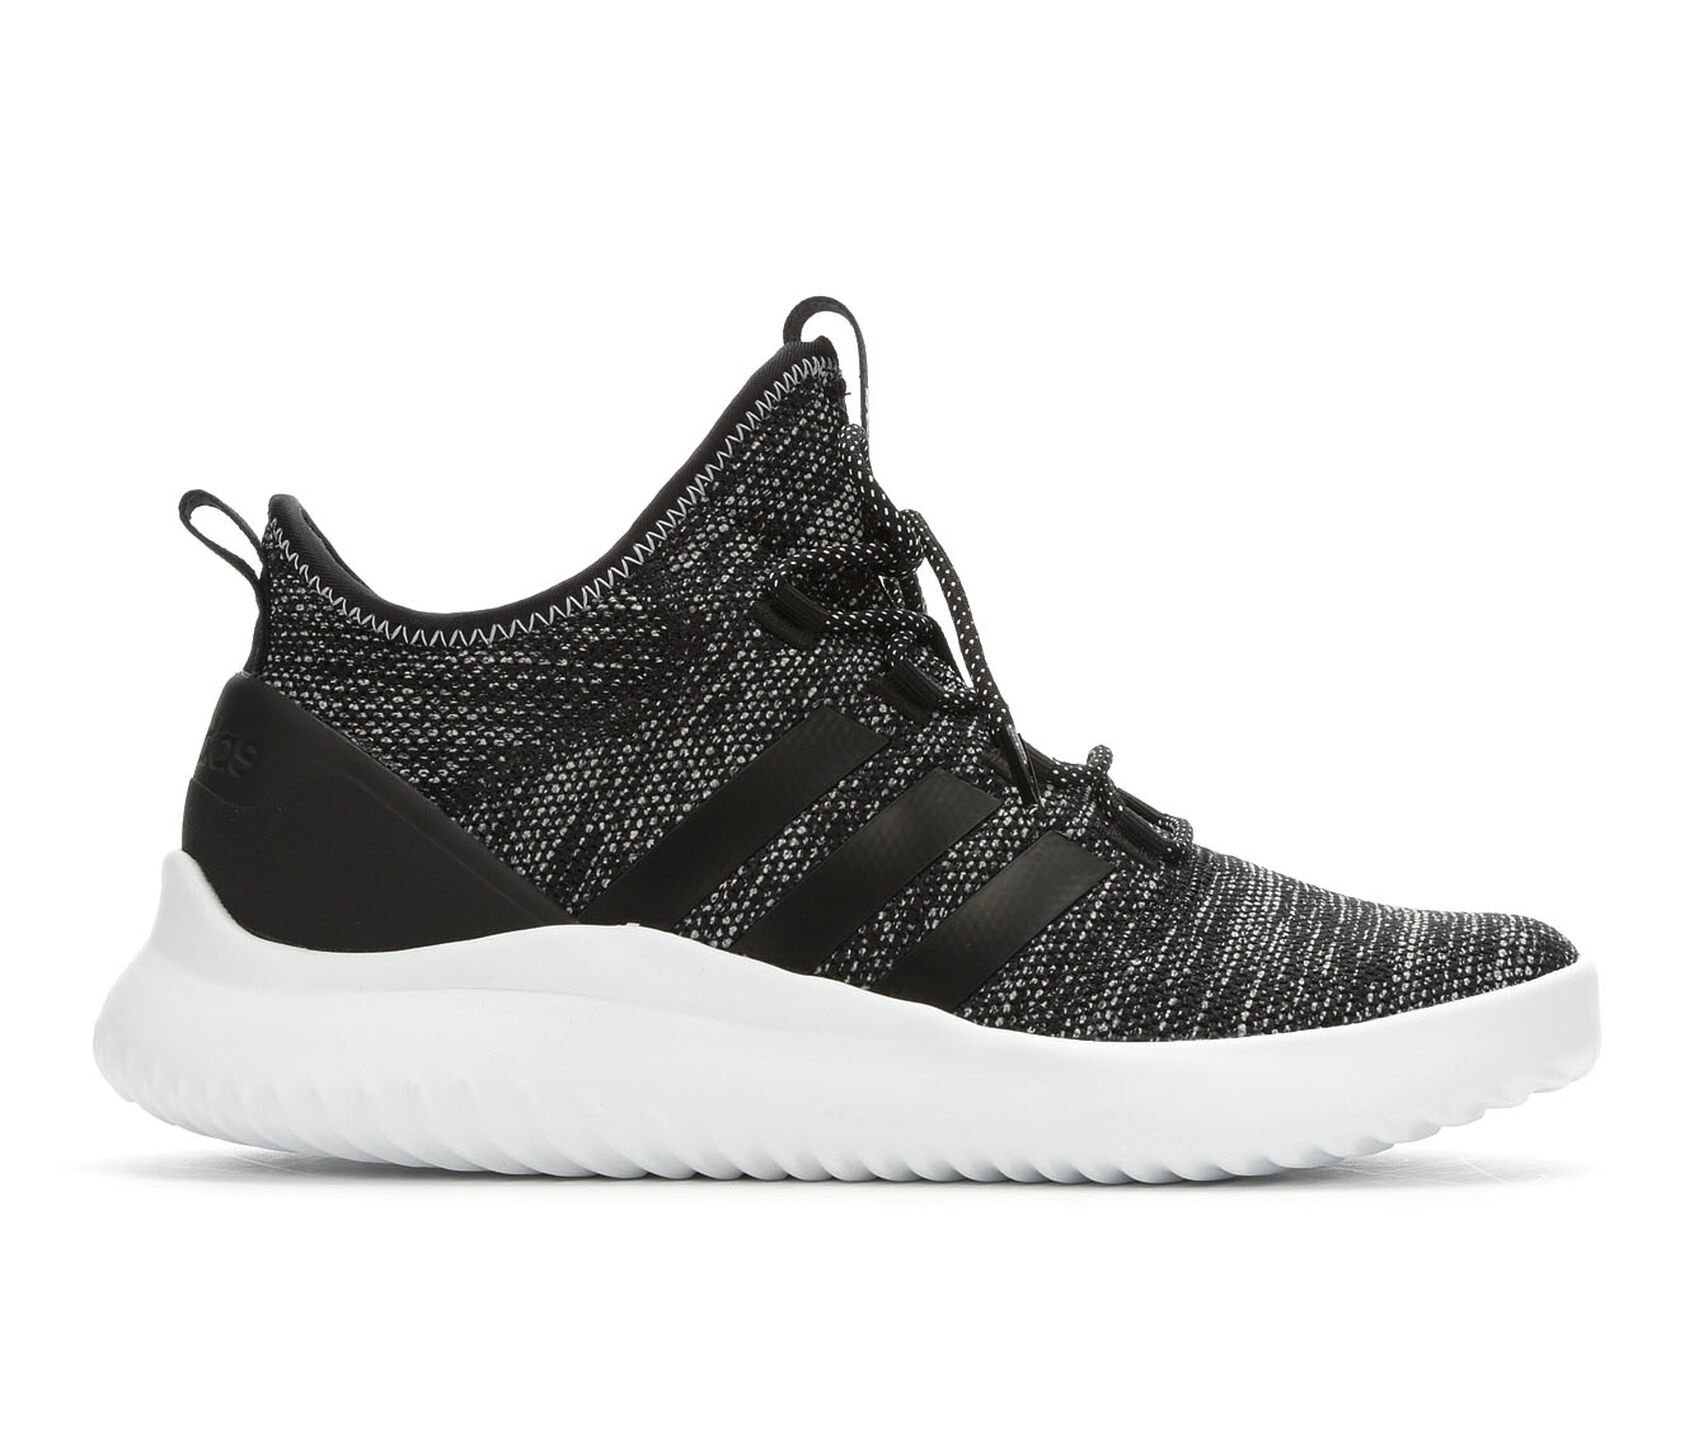 check out b074f 78783 ... Adidas Cloudfoam Ultimate Bball High Top Basketball Shoes. Carousel  Controls